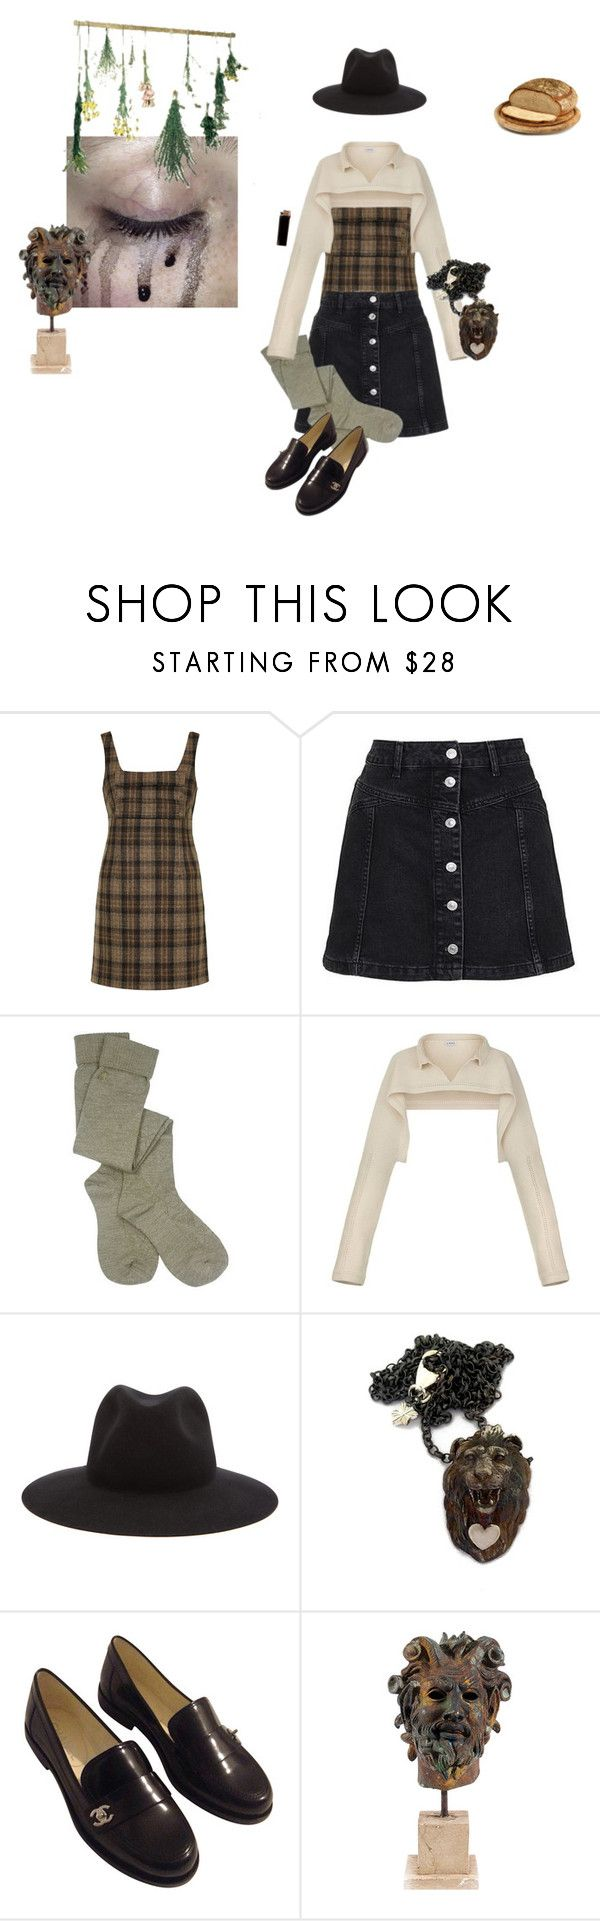 """""""Wildwood"""" by vulture95 ❤ liked on Polyvore featuring Unique, Topshop, Pendleton, Loewe, rag & bone, Cabbage is King, GAS Jeans and Chanel"""